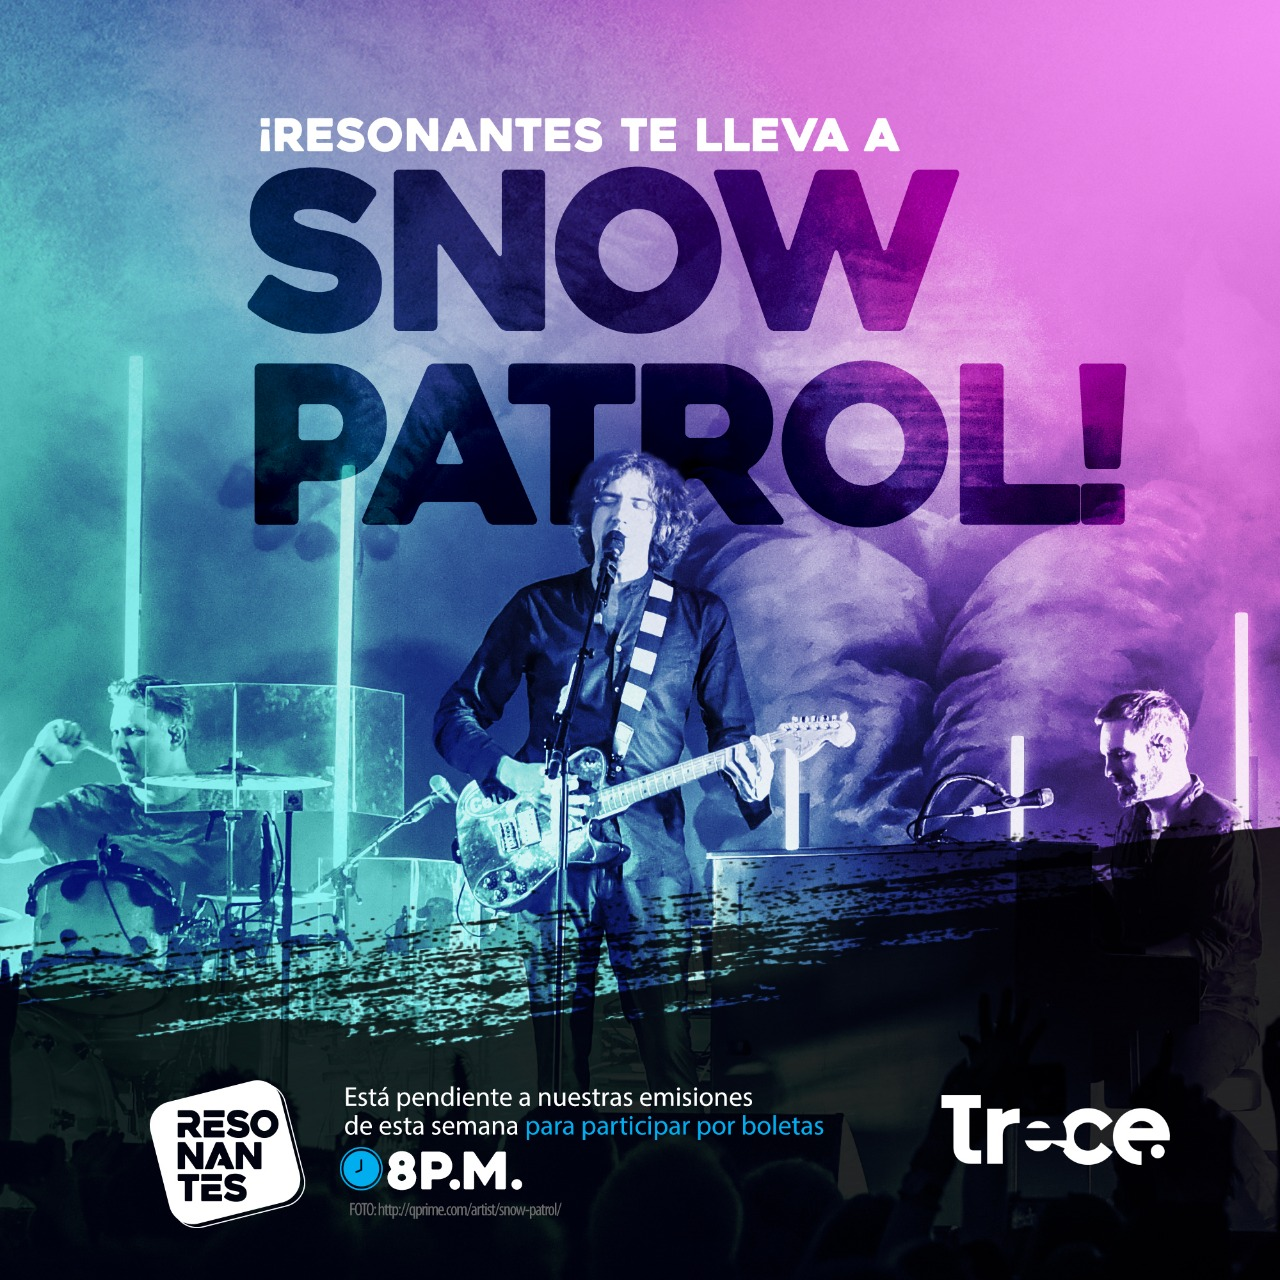 Resonantes te lleva a Snow Patrol.